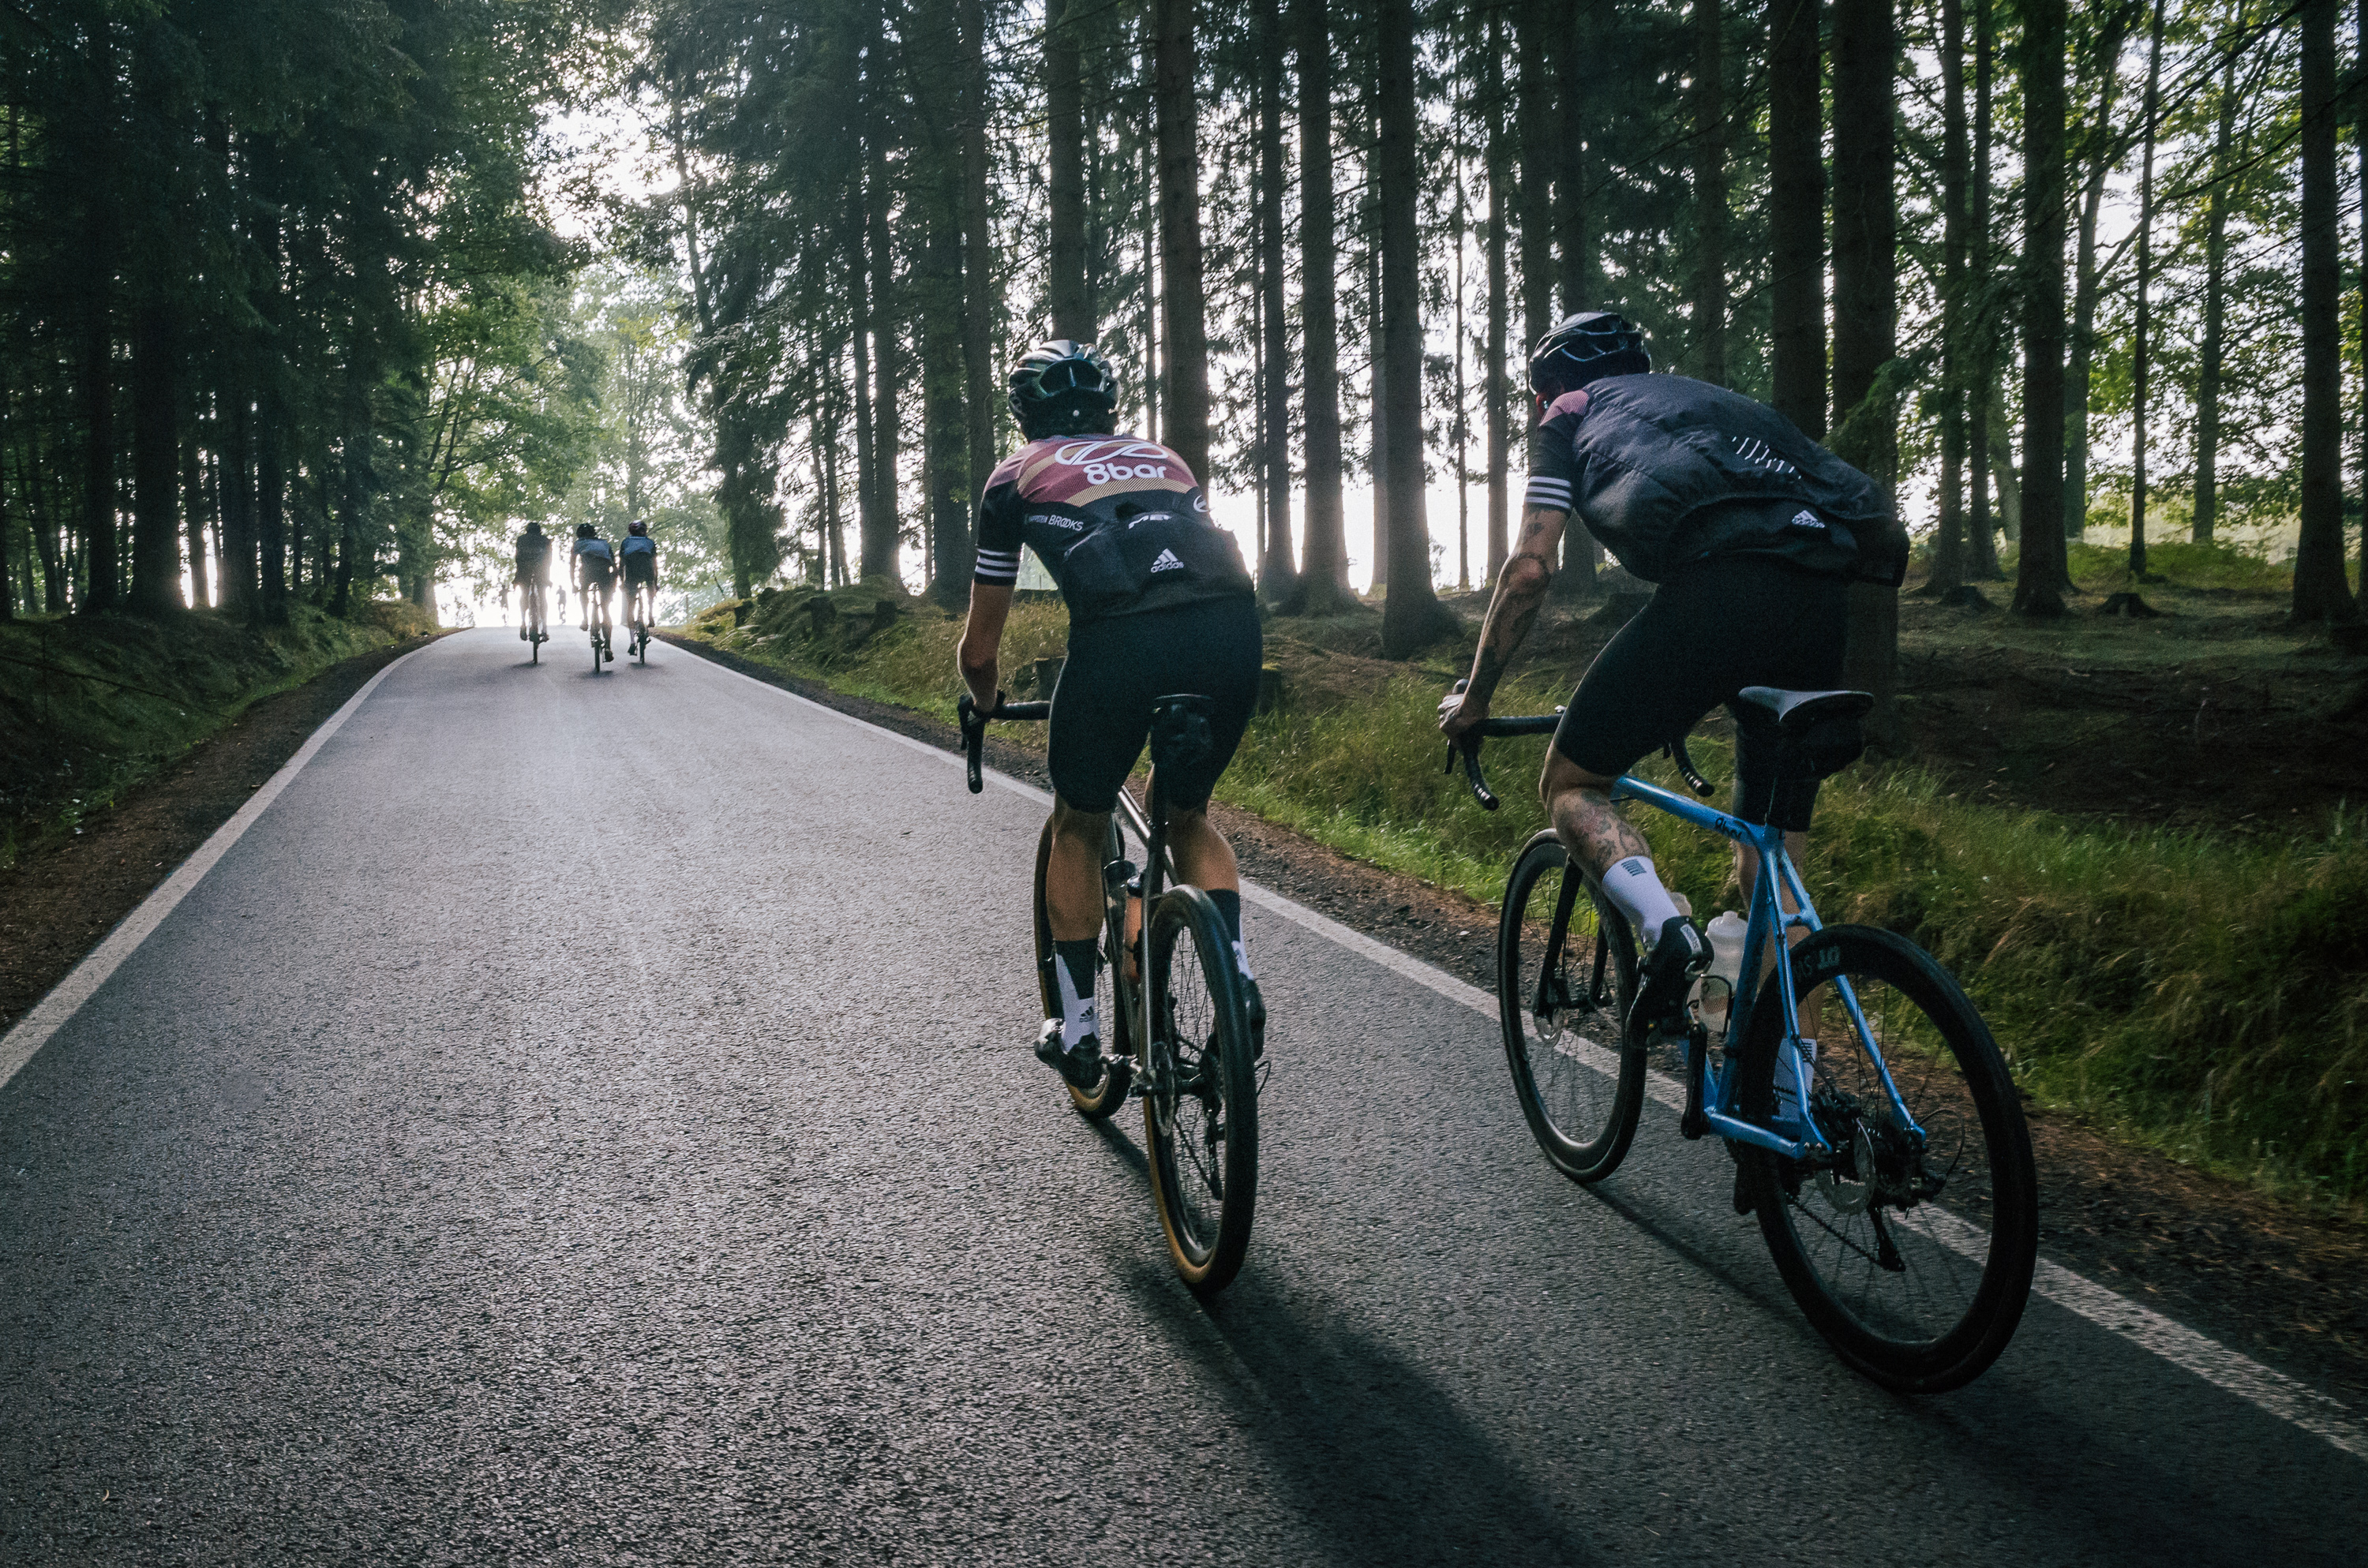 Cyclists on a road that goes through a forest. On the foreground are two cyclists riding one beside the other.